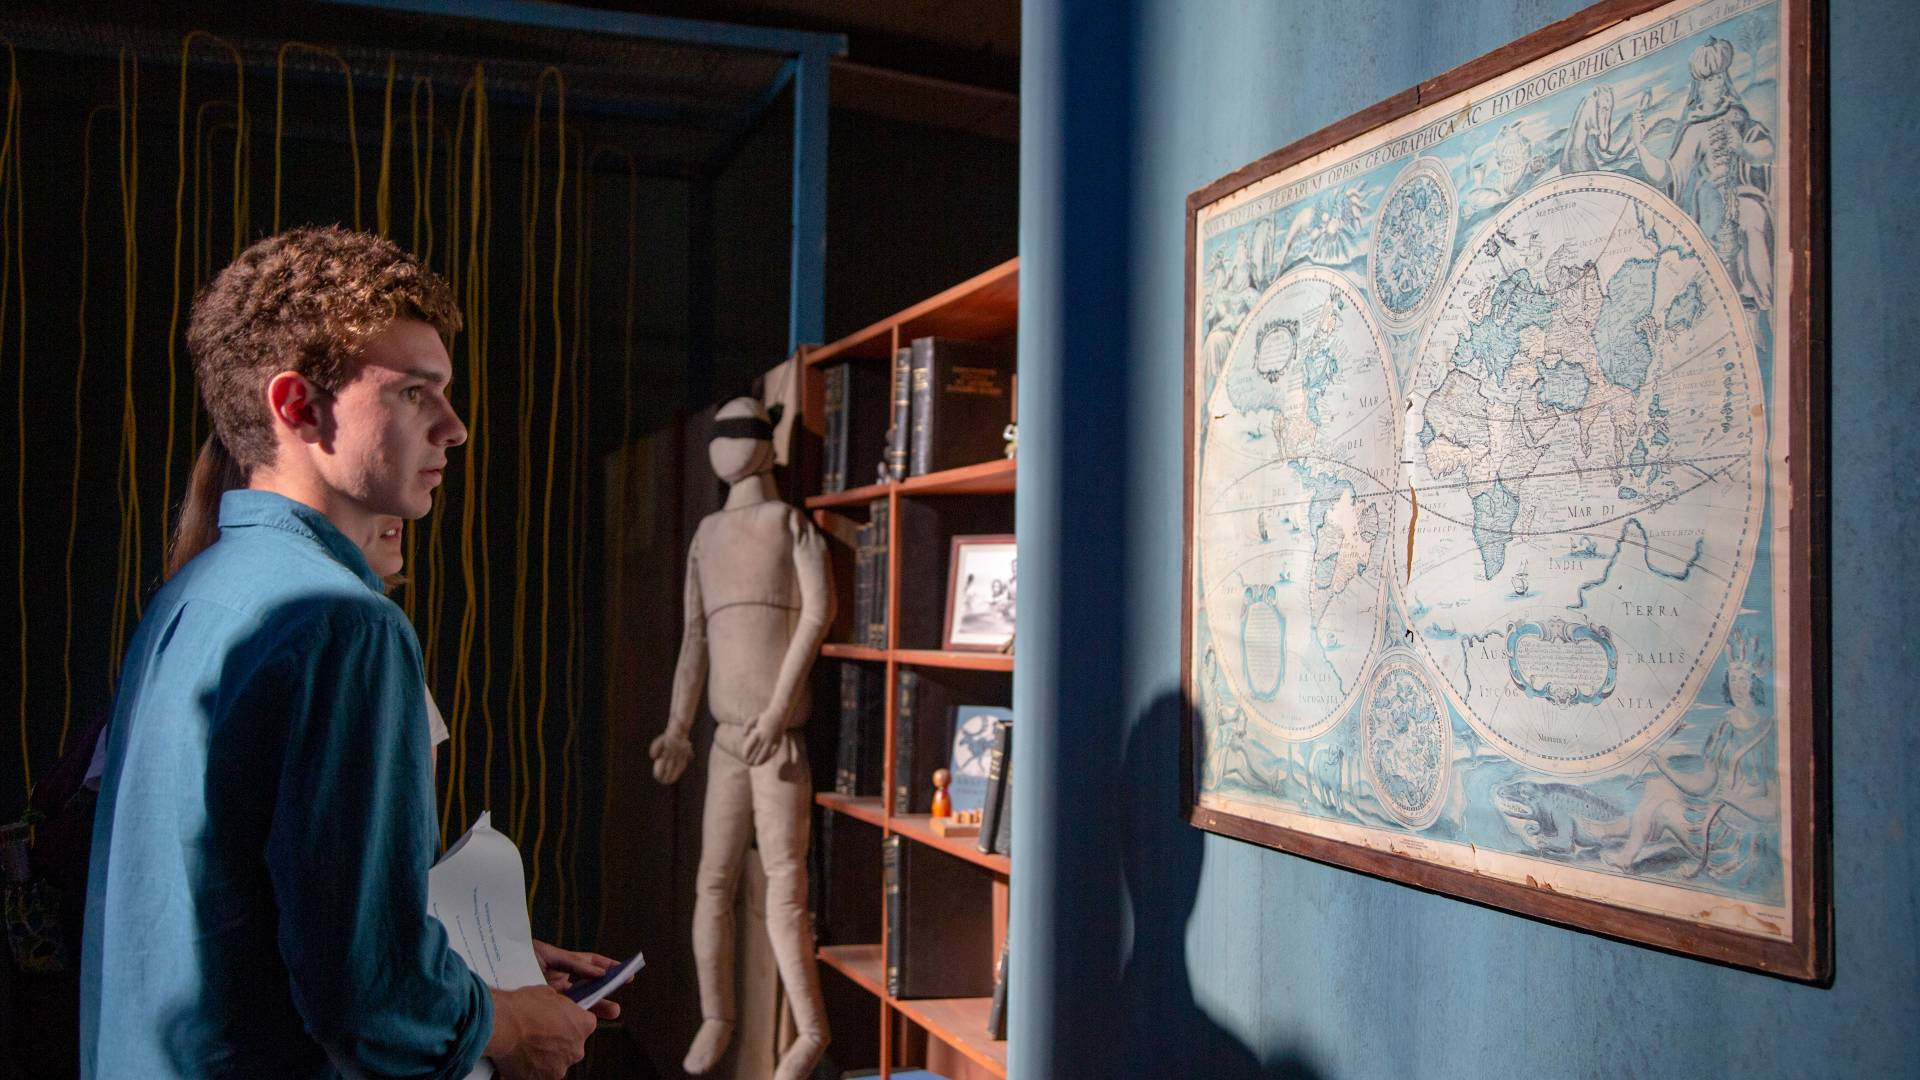 Students looking at ancient map in art installation in Athens, Greece